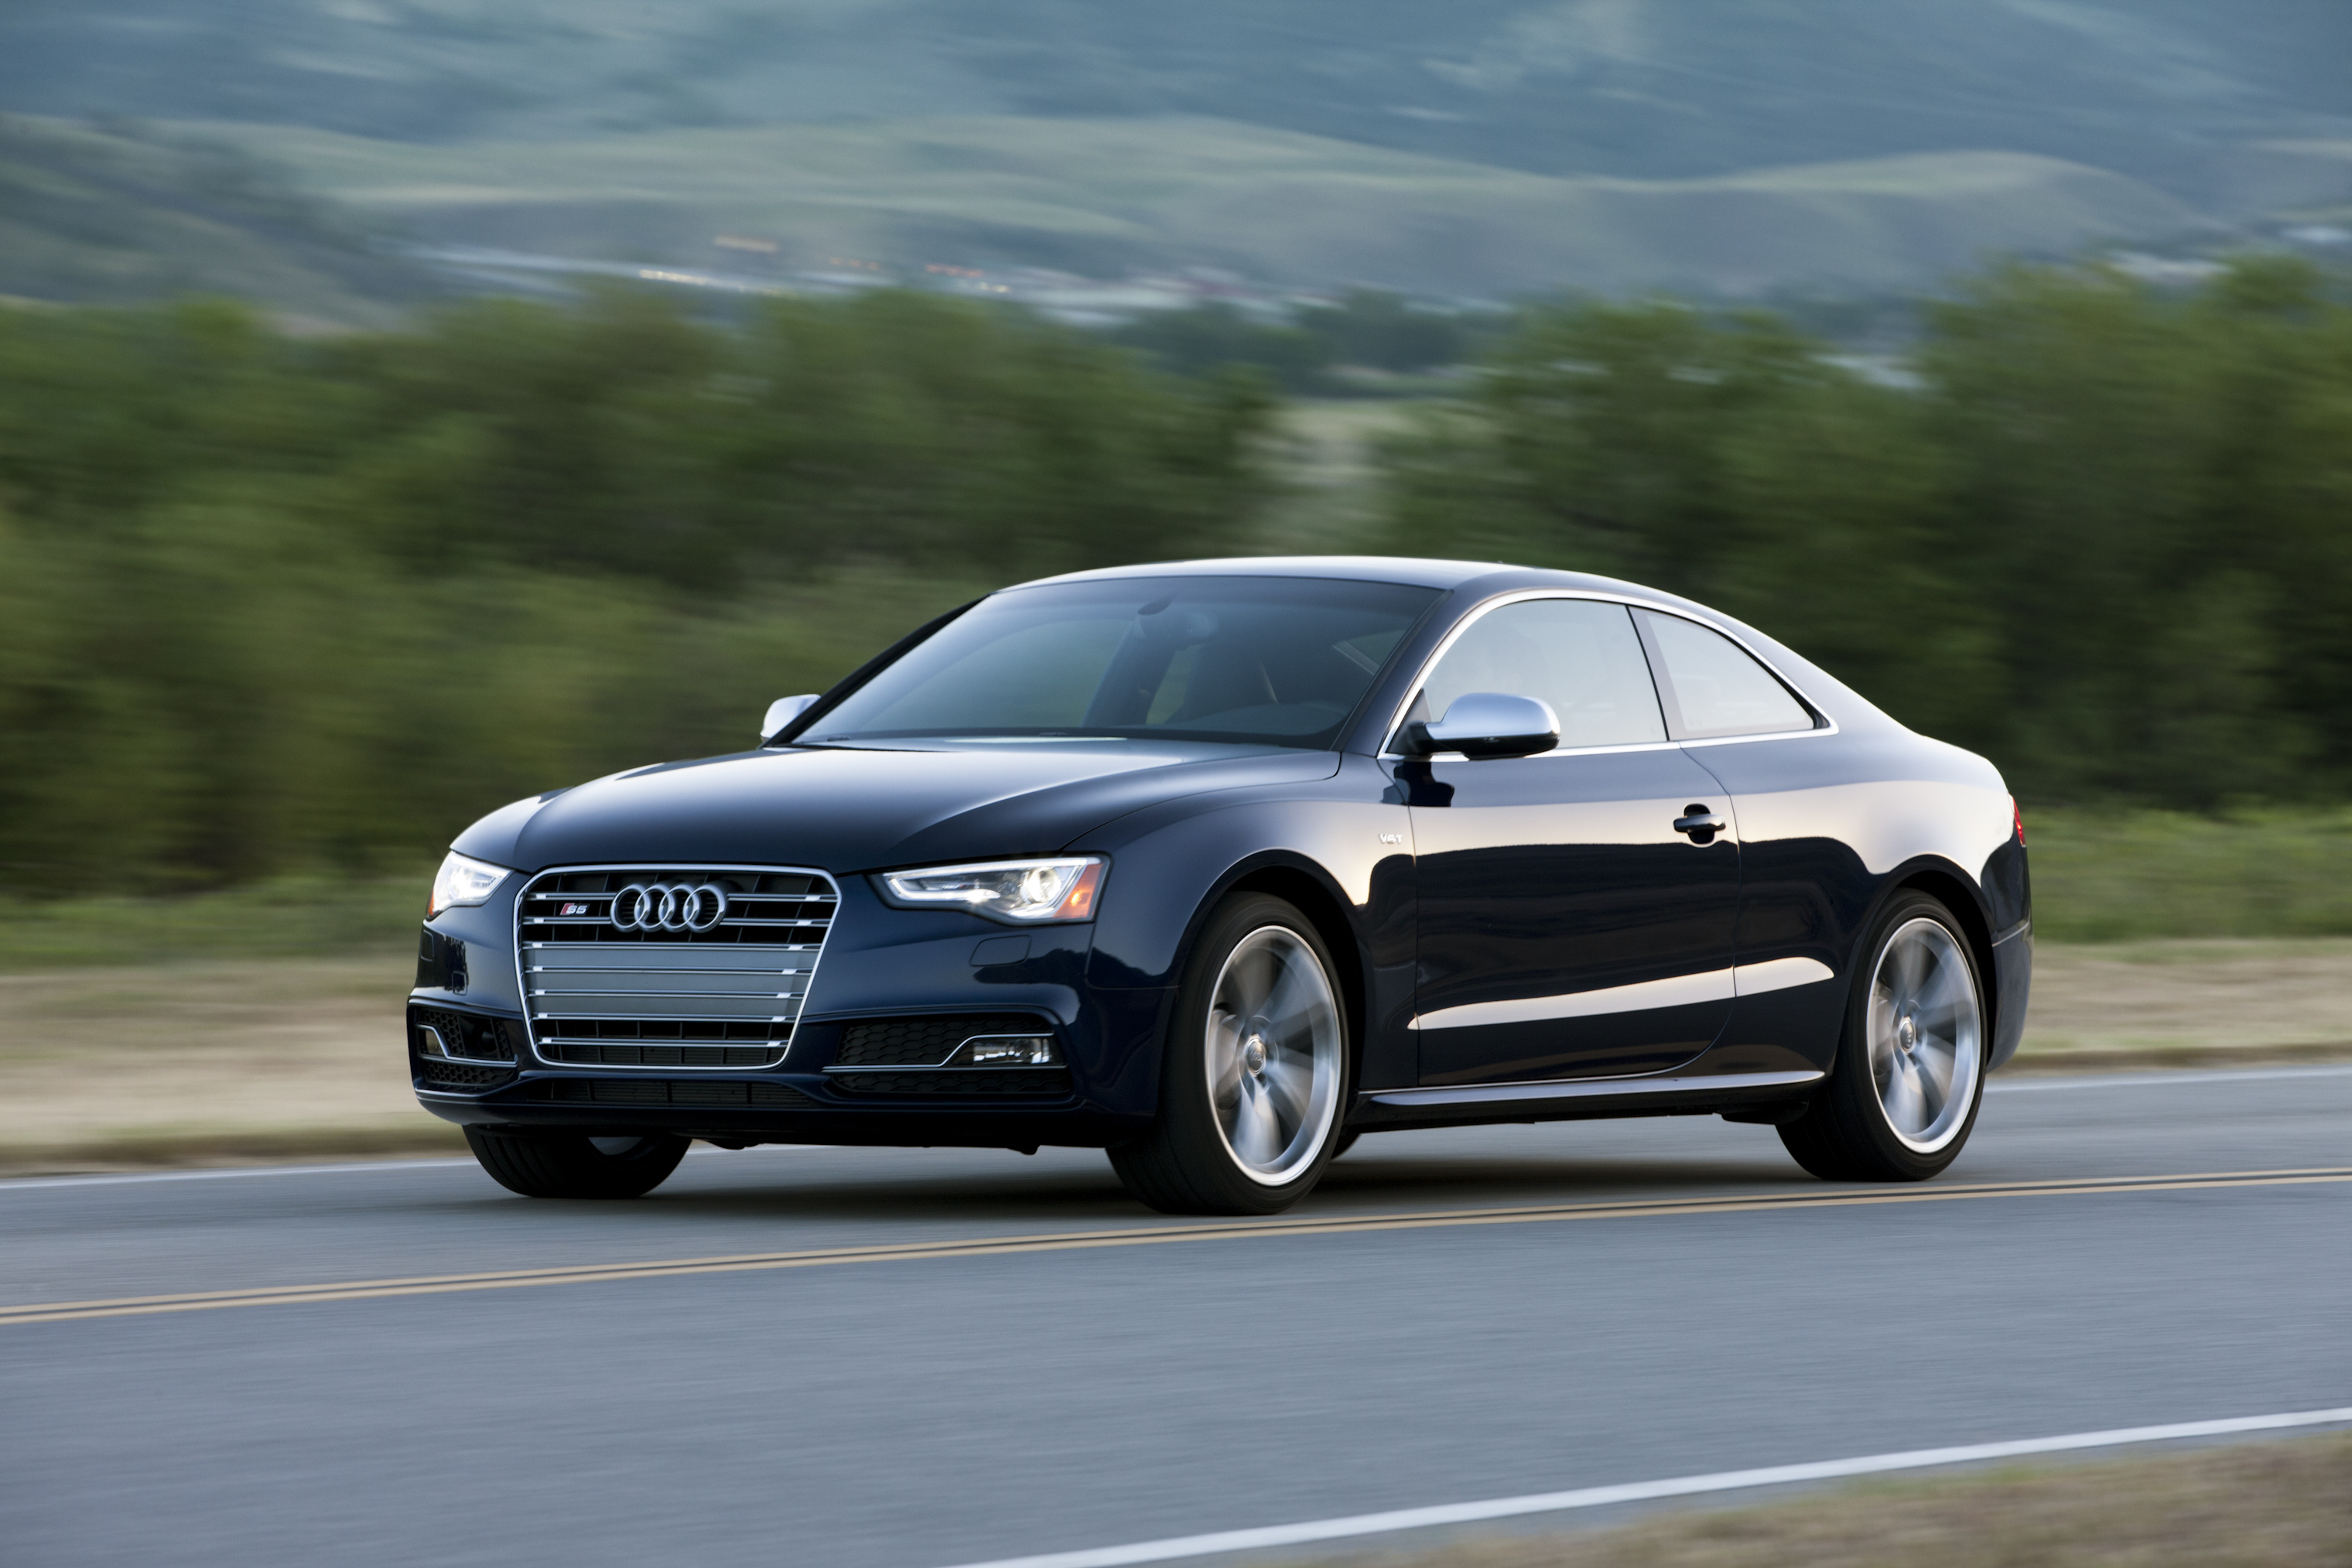 2013 - 2014 Audi S5 Coupe | Top Speed